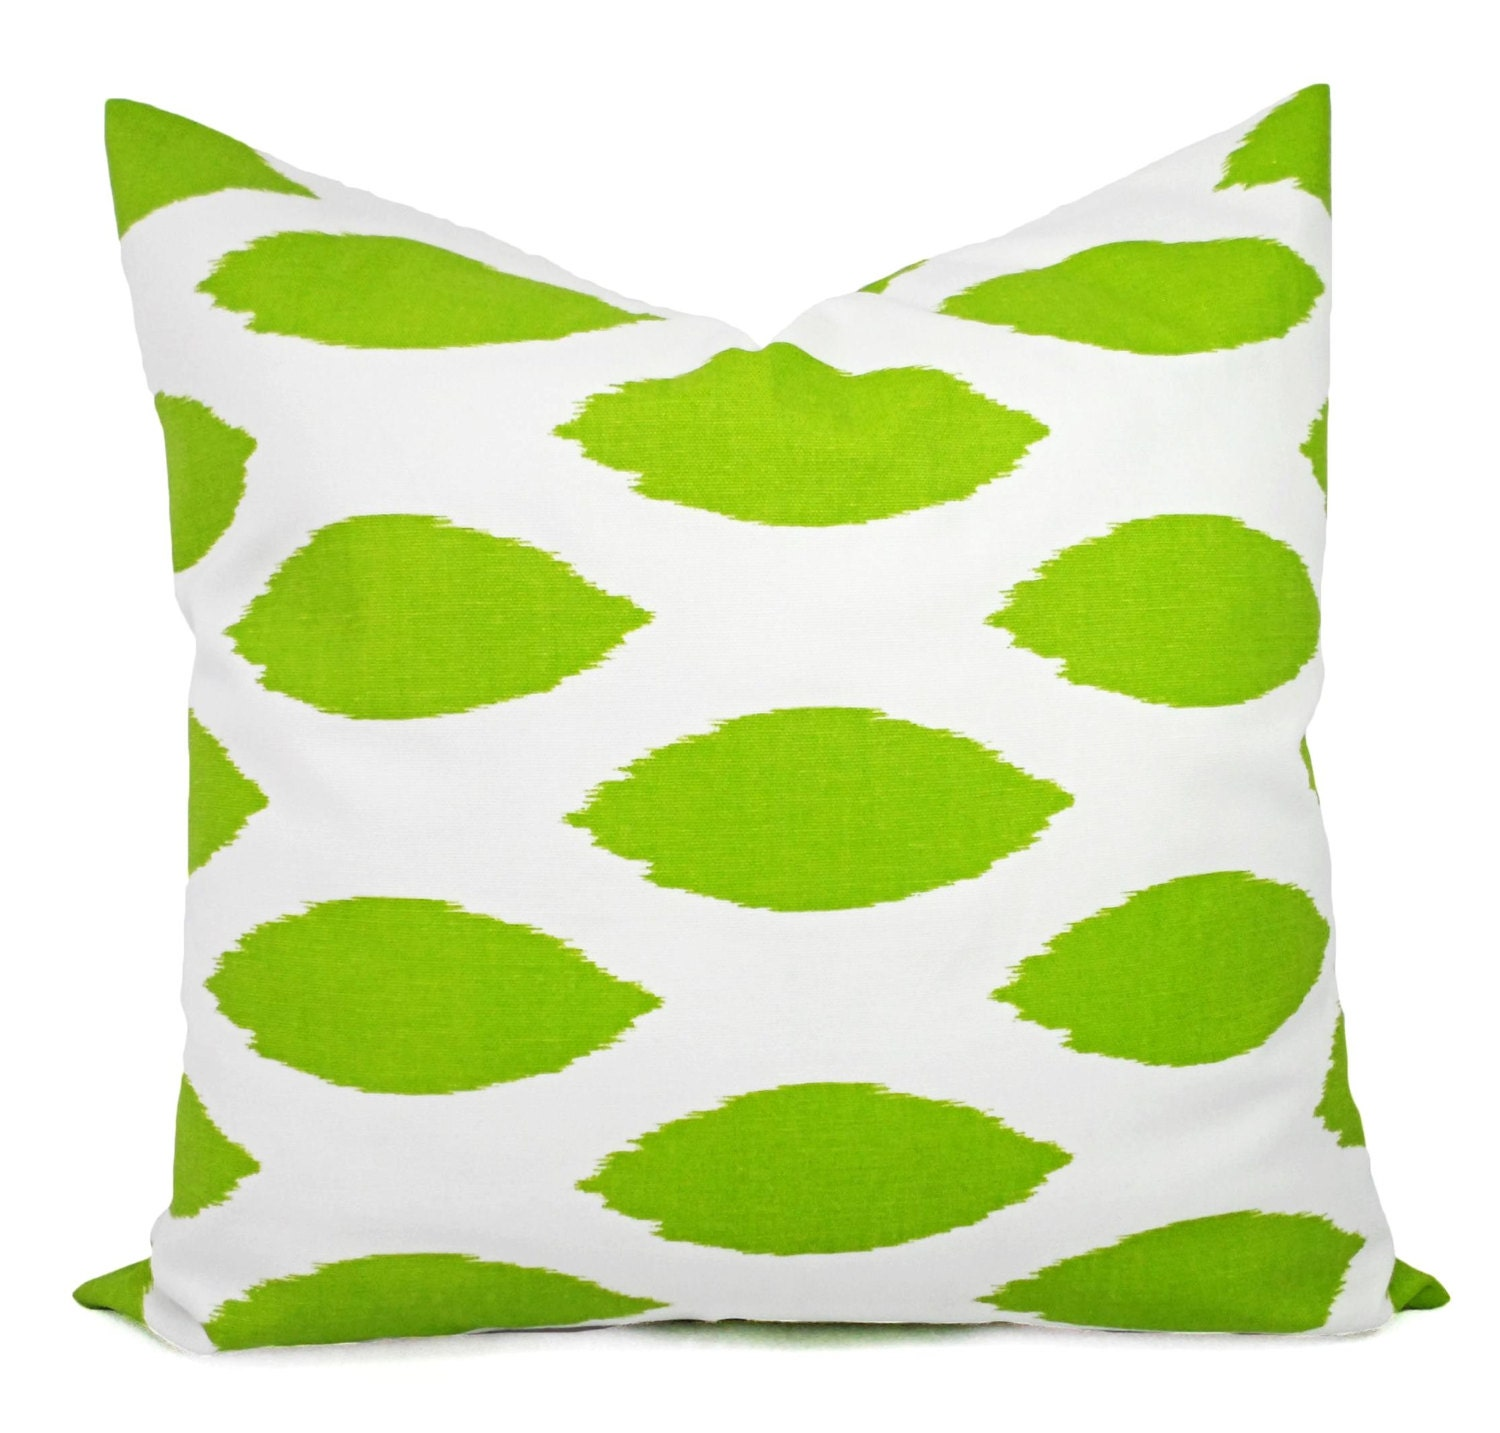 Two green throw pillows two green and white ikat pillow for Green and white throw pillows